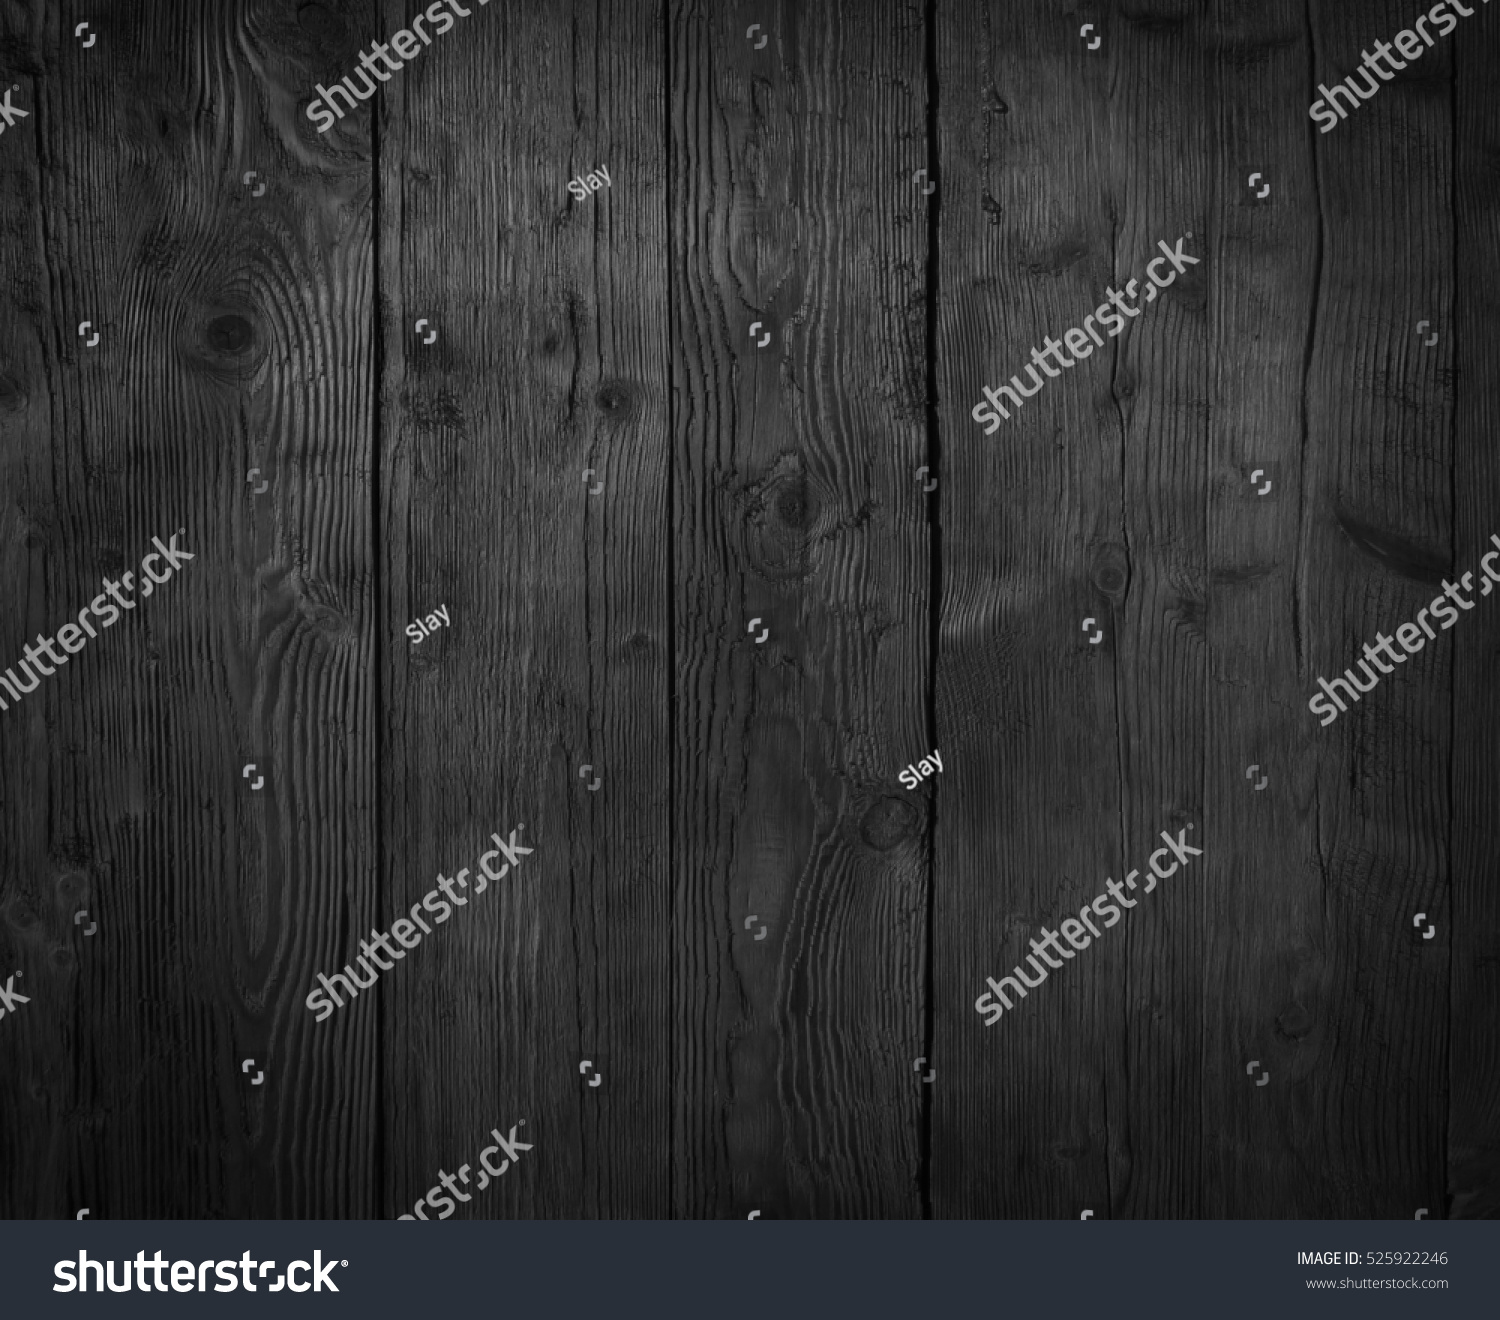 Image Result For Black Wood Texture